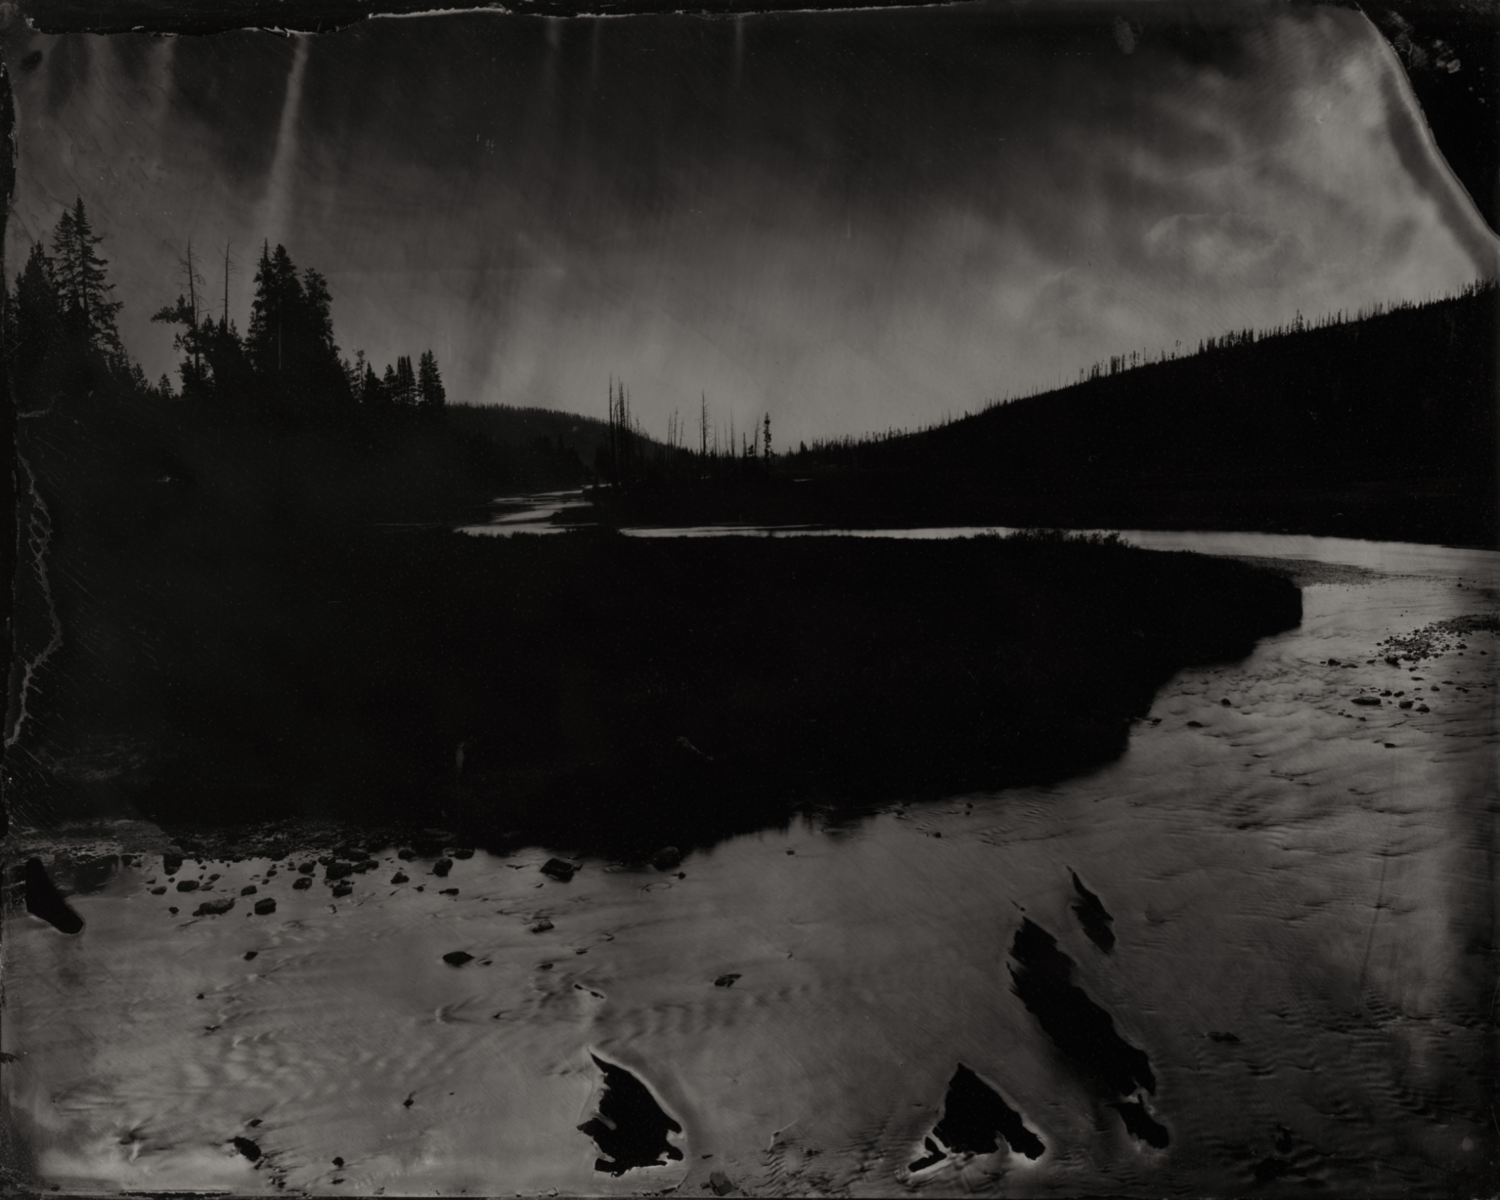 Lewis River #1 (Yellowstone) , 2016  Pigment print on Baryta paper (Diasec mounted, no frame)  42 x 52.5 inches  Edition 1 of 5